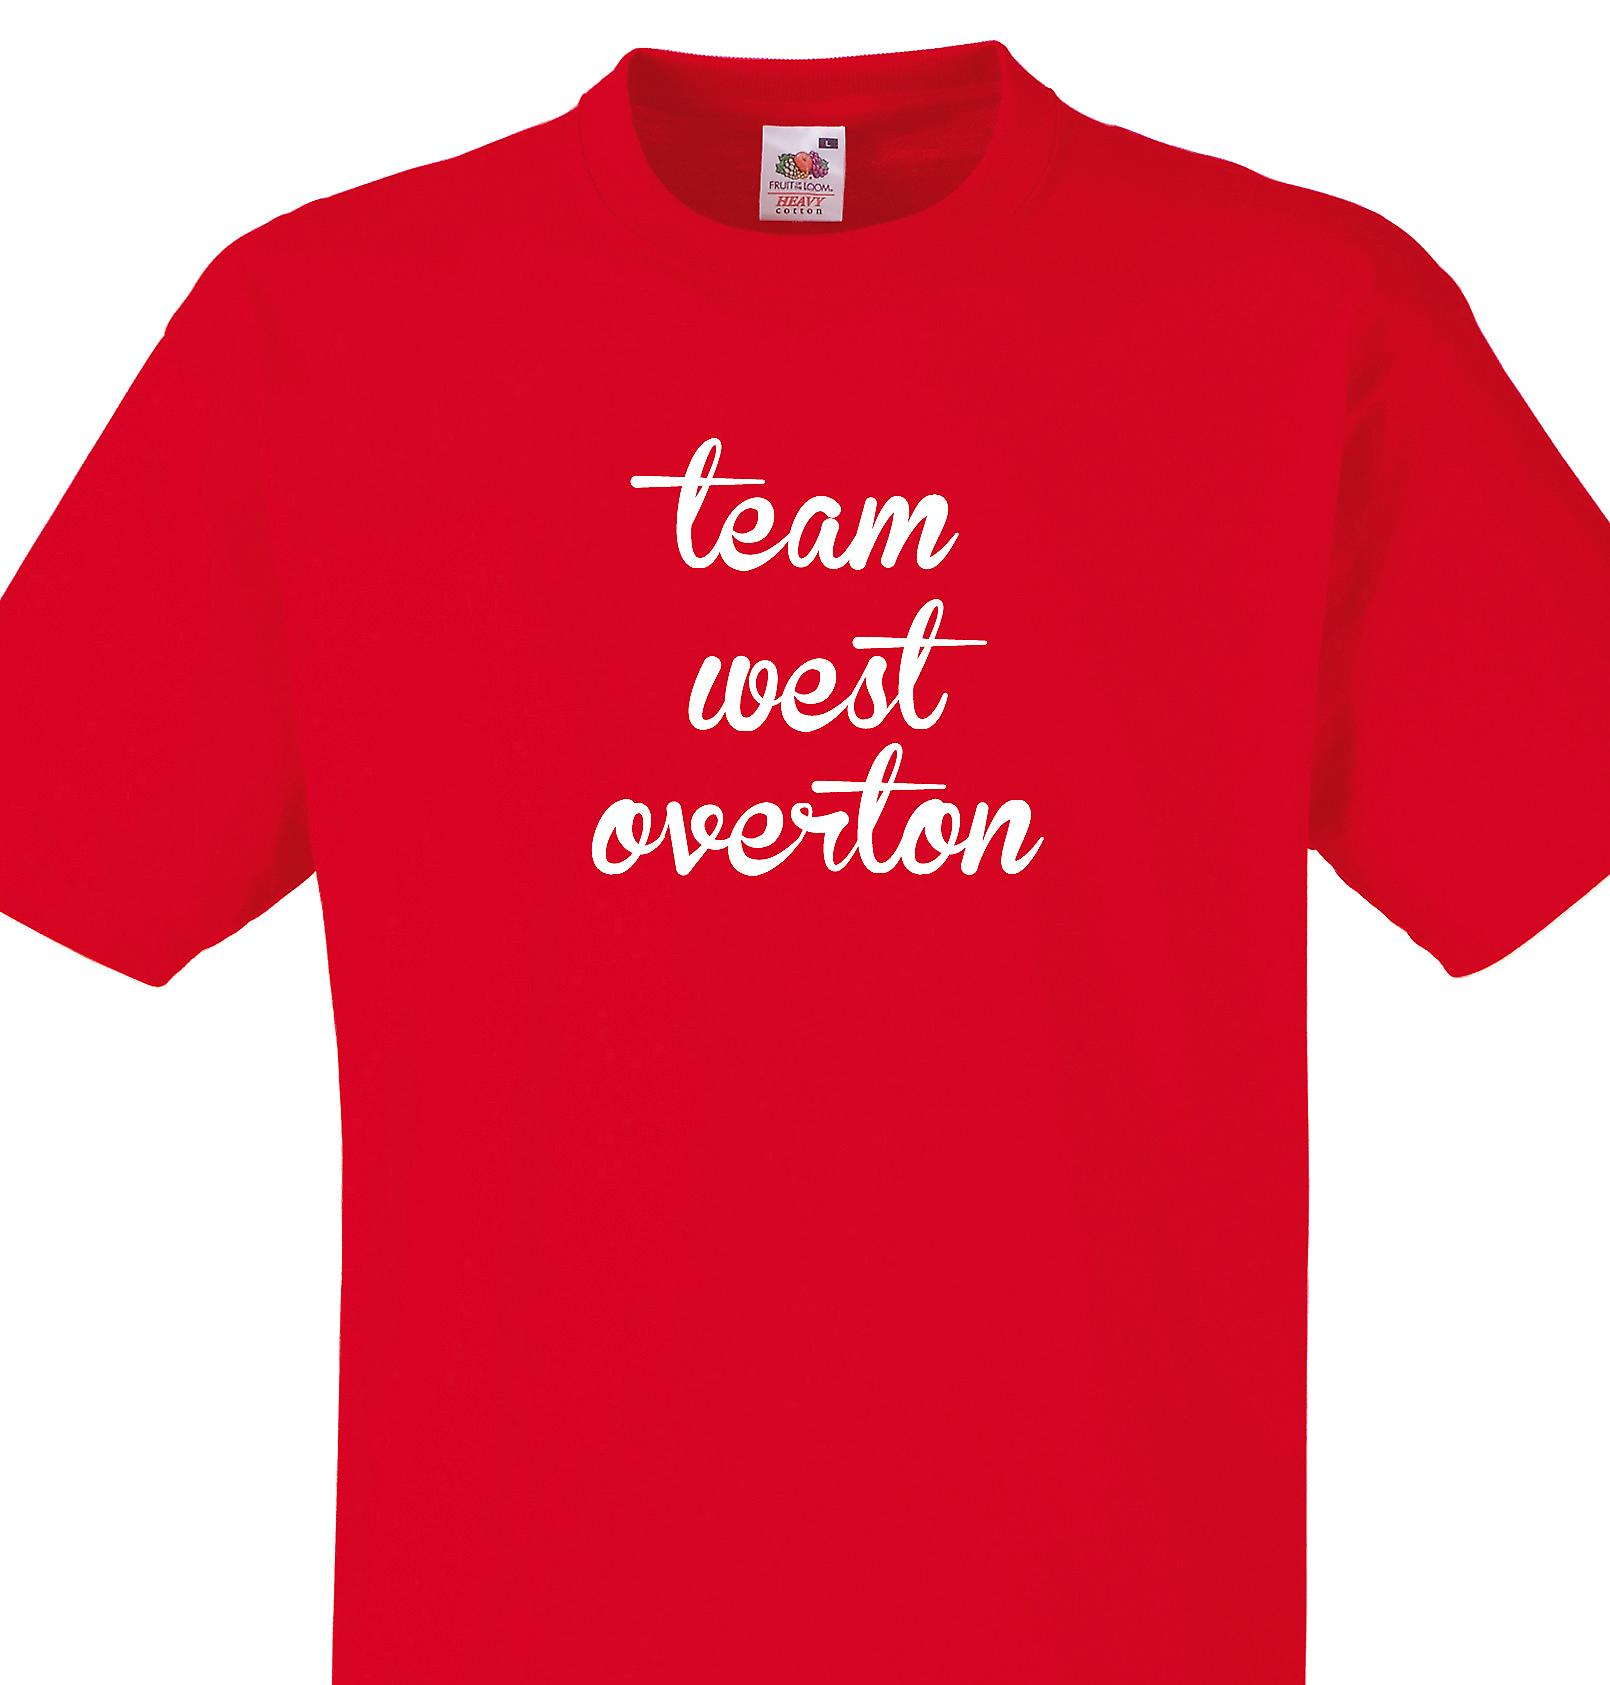 Team West overton Red T shirt